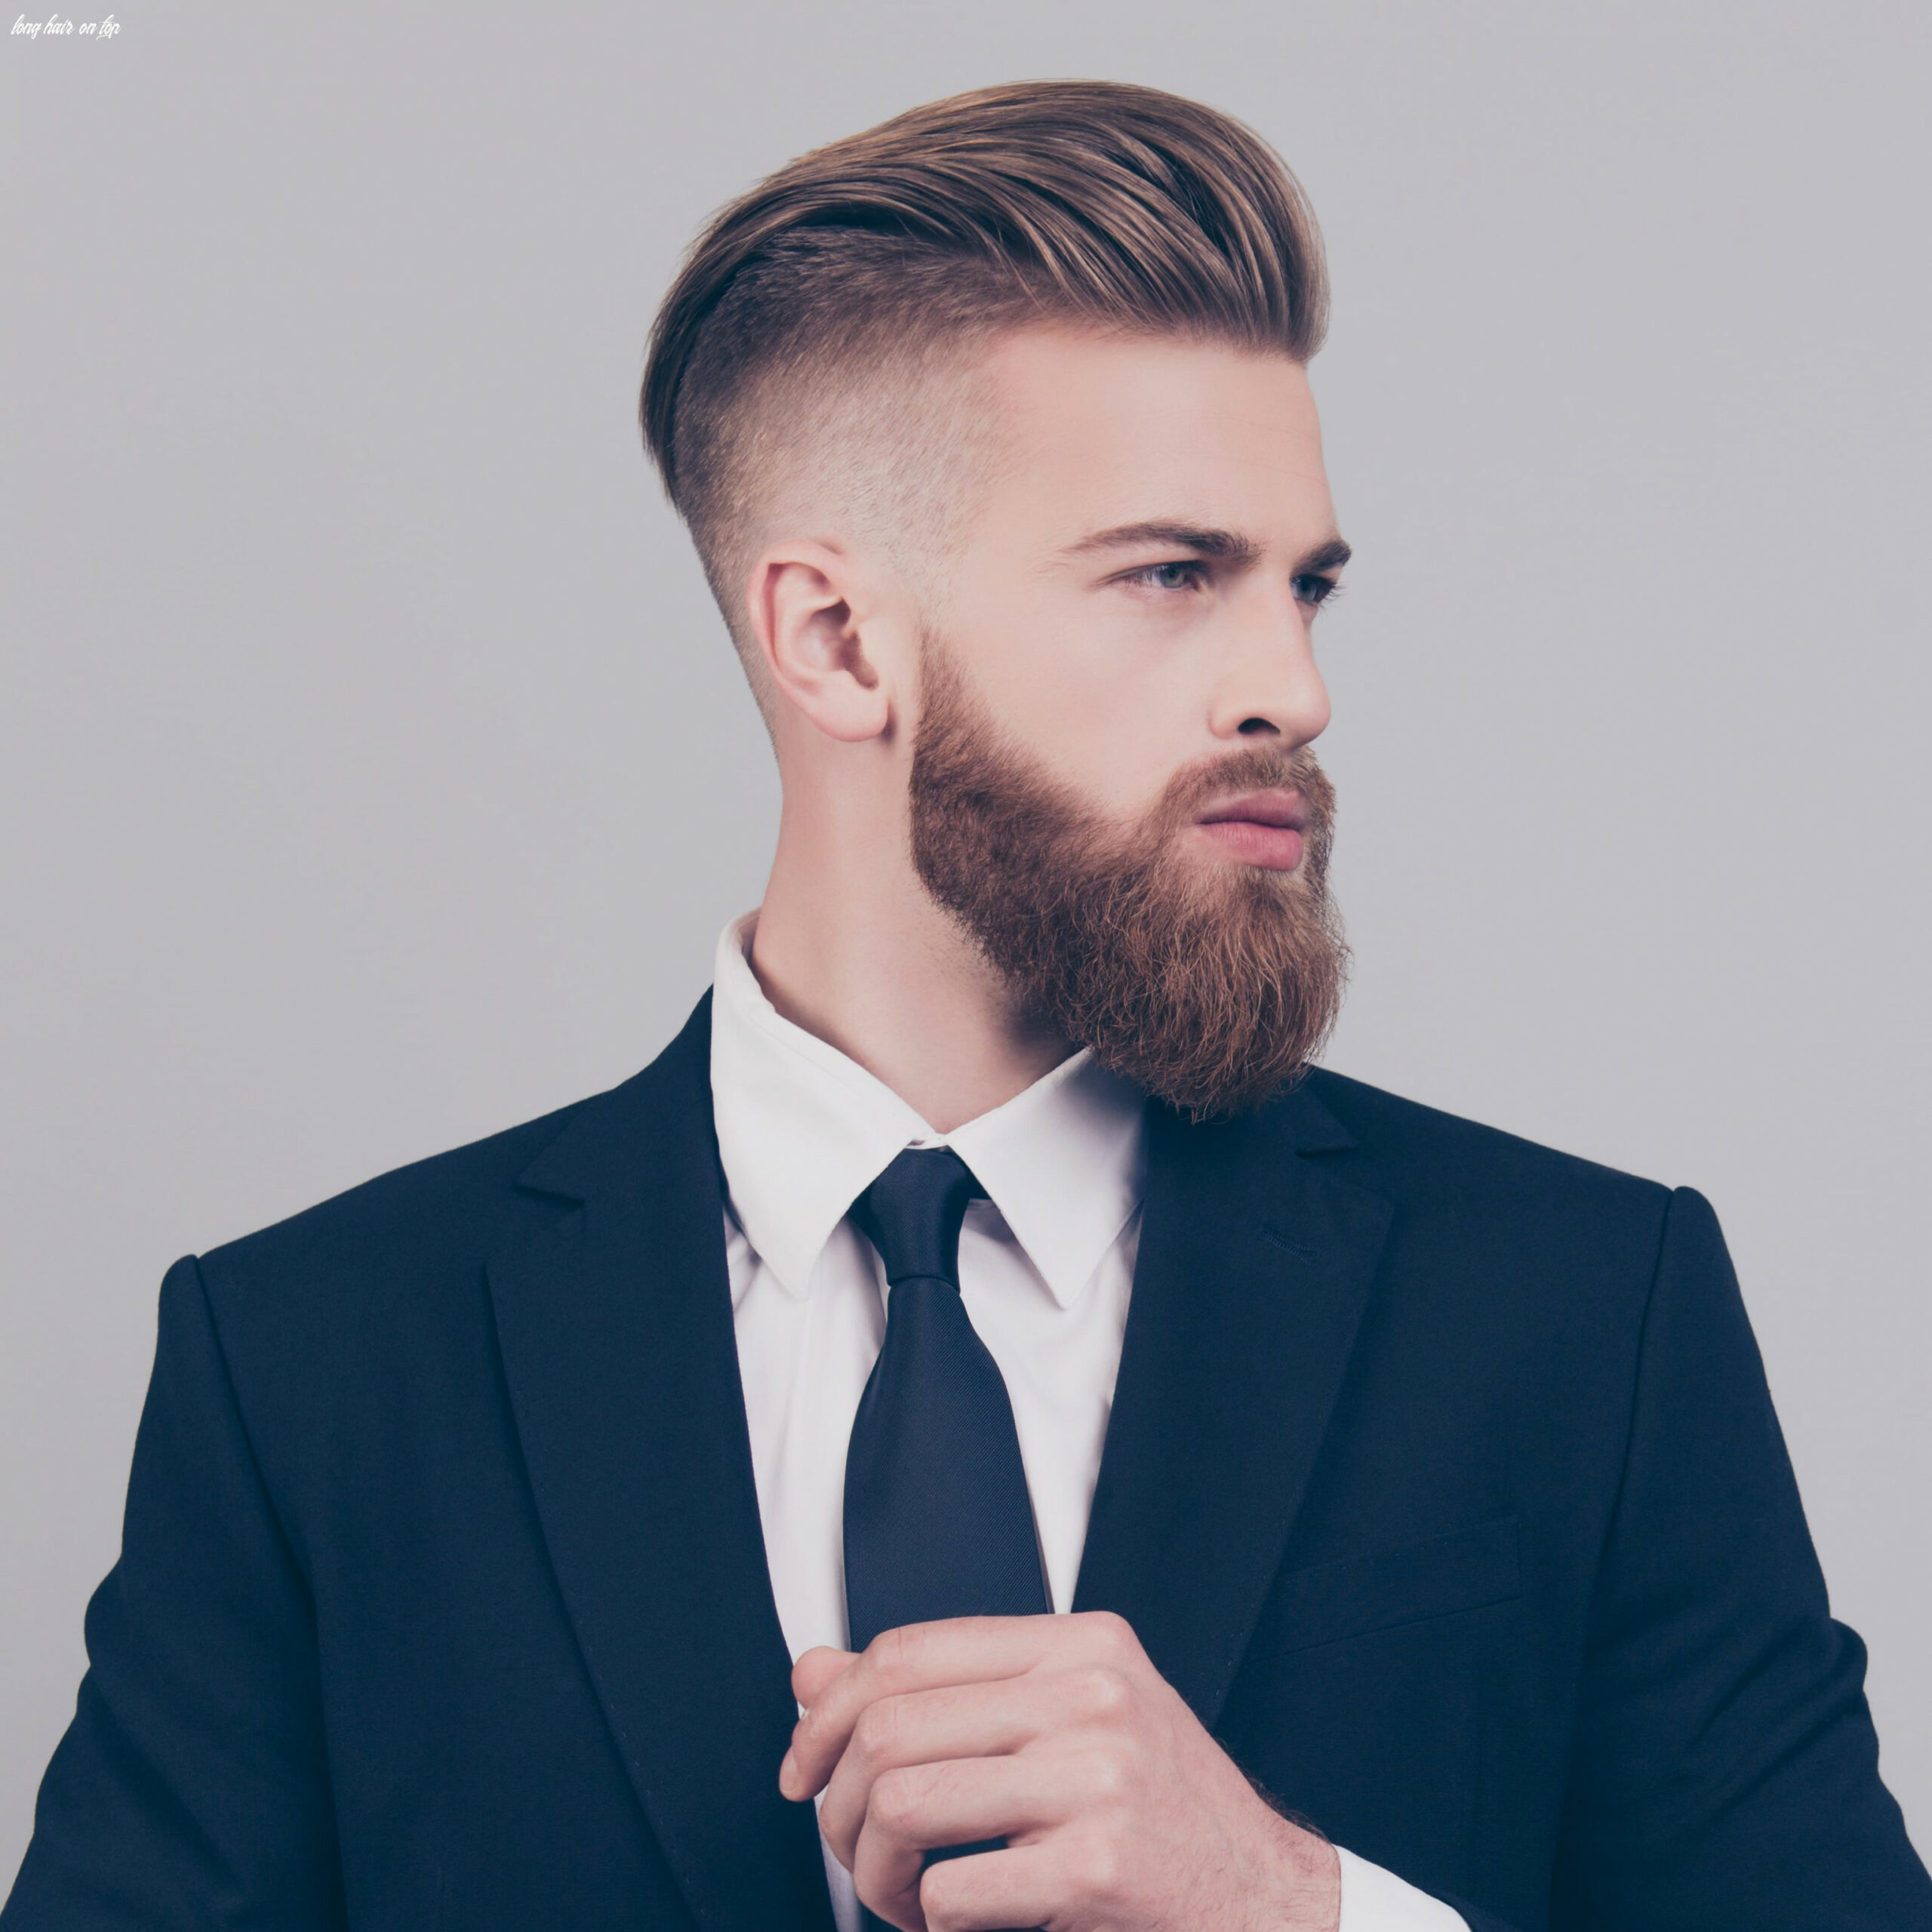 The best of both worlds: short sides & long top | haircut inspiration long hair on top